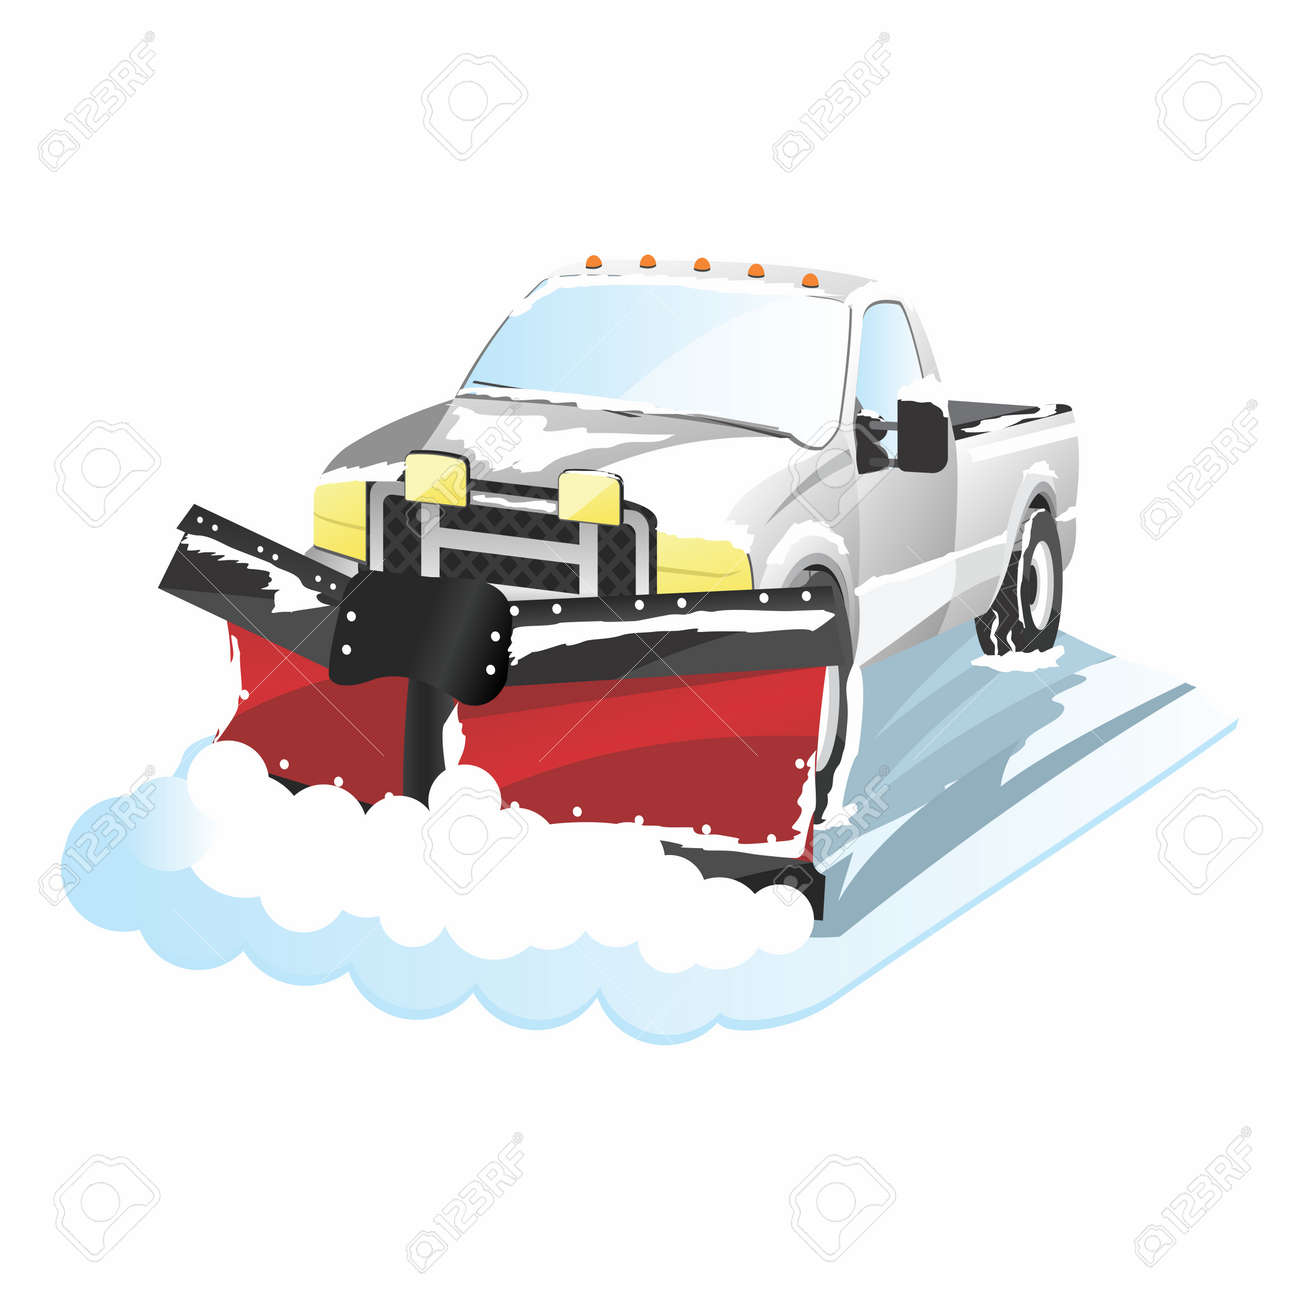 2 939 plow stock vector illustration and royalty free plow clipart rh 123rf com Funny Snow Clip Art snow plow truck clipart